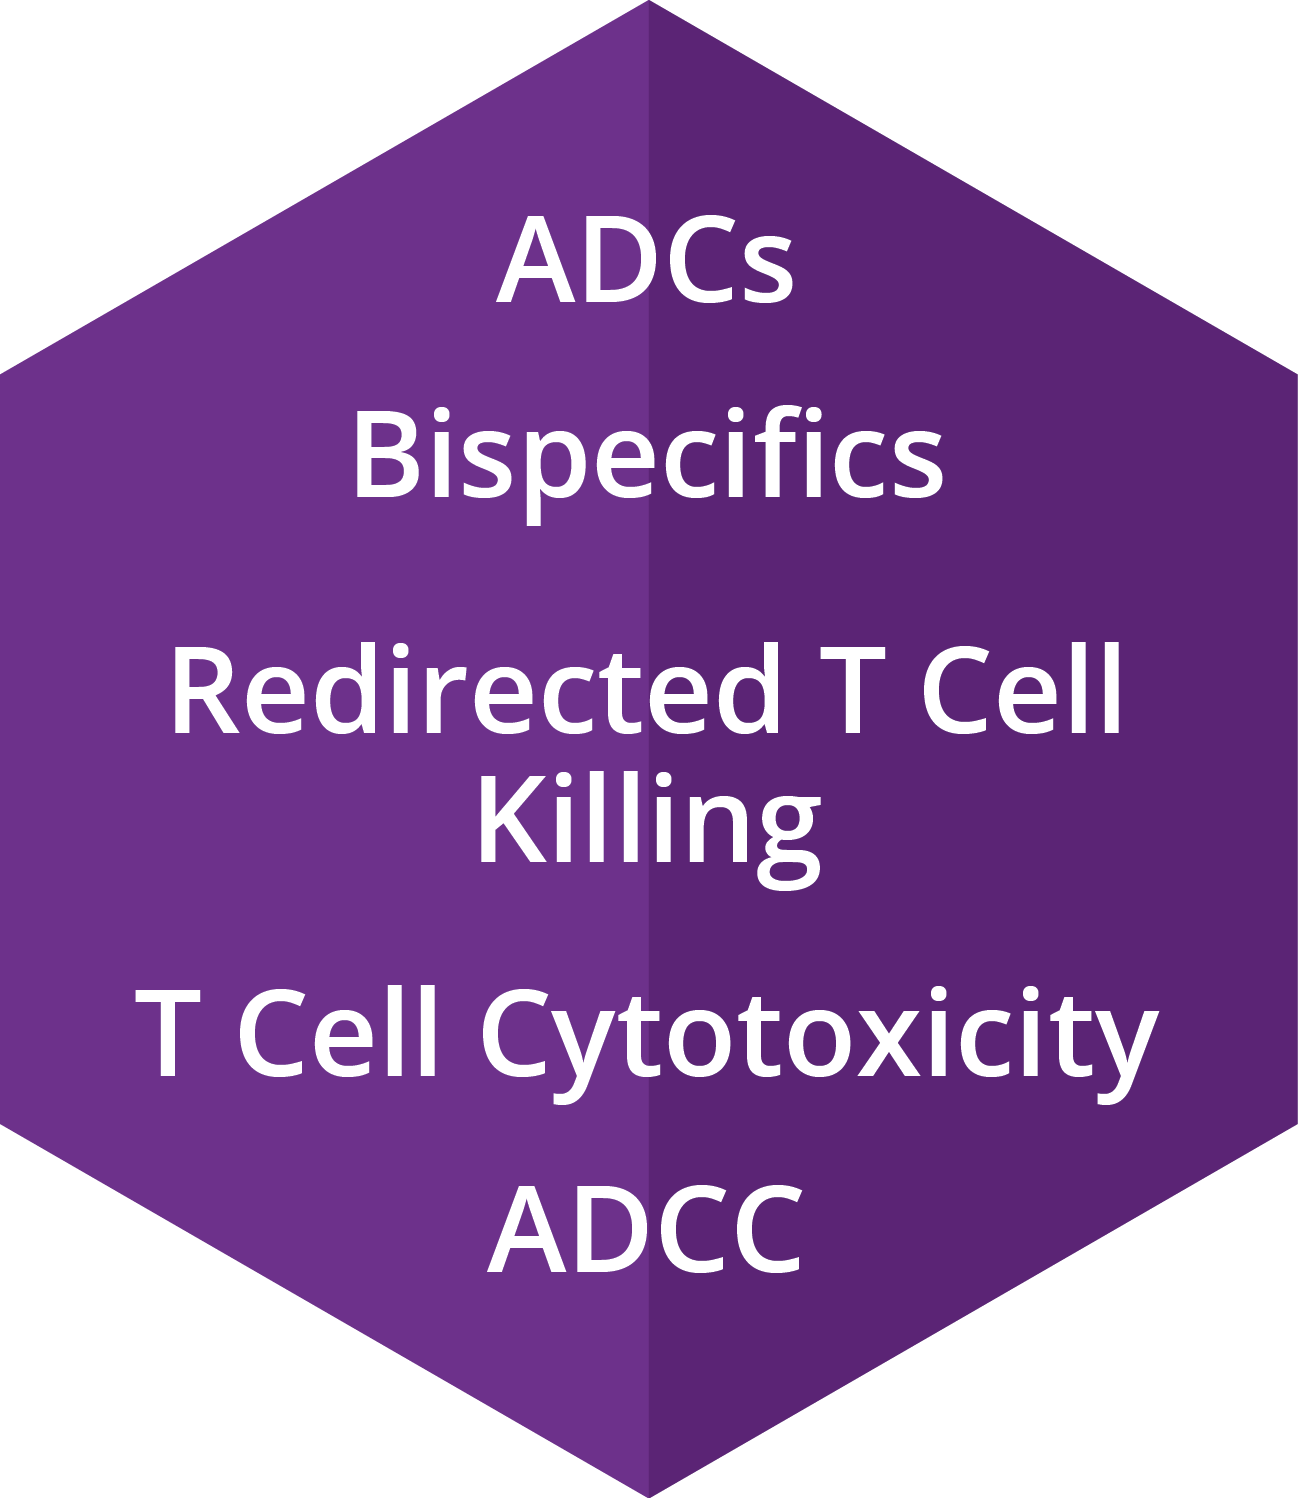 ADCs, Bispecifics, Redirected T Cell Killing, T Cell Cytotoxicity, ADCC